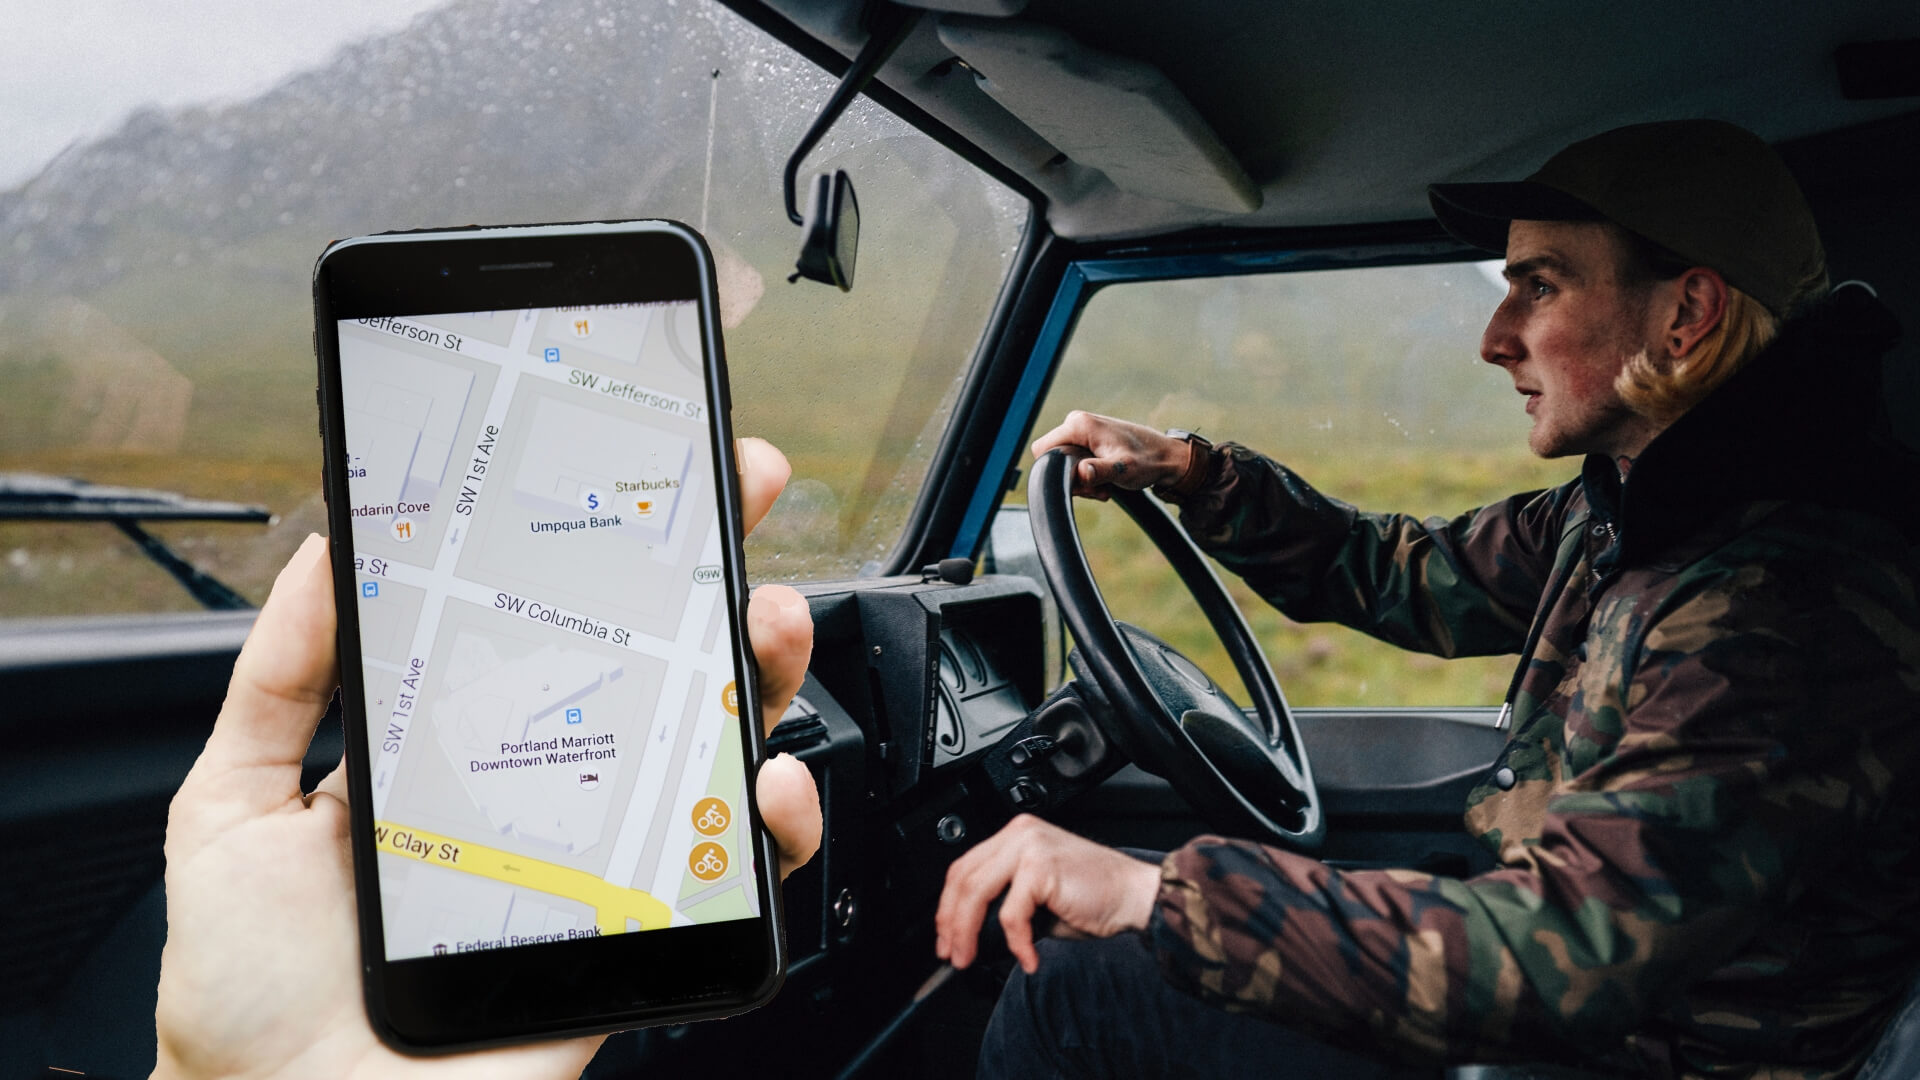 Driver side of the on-demand trucking app development